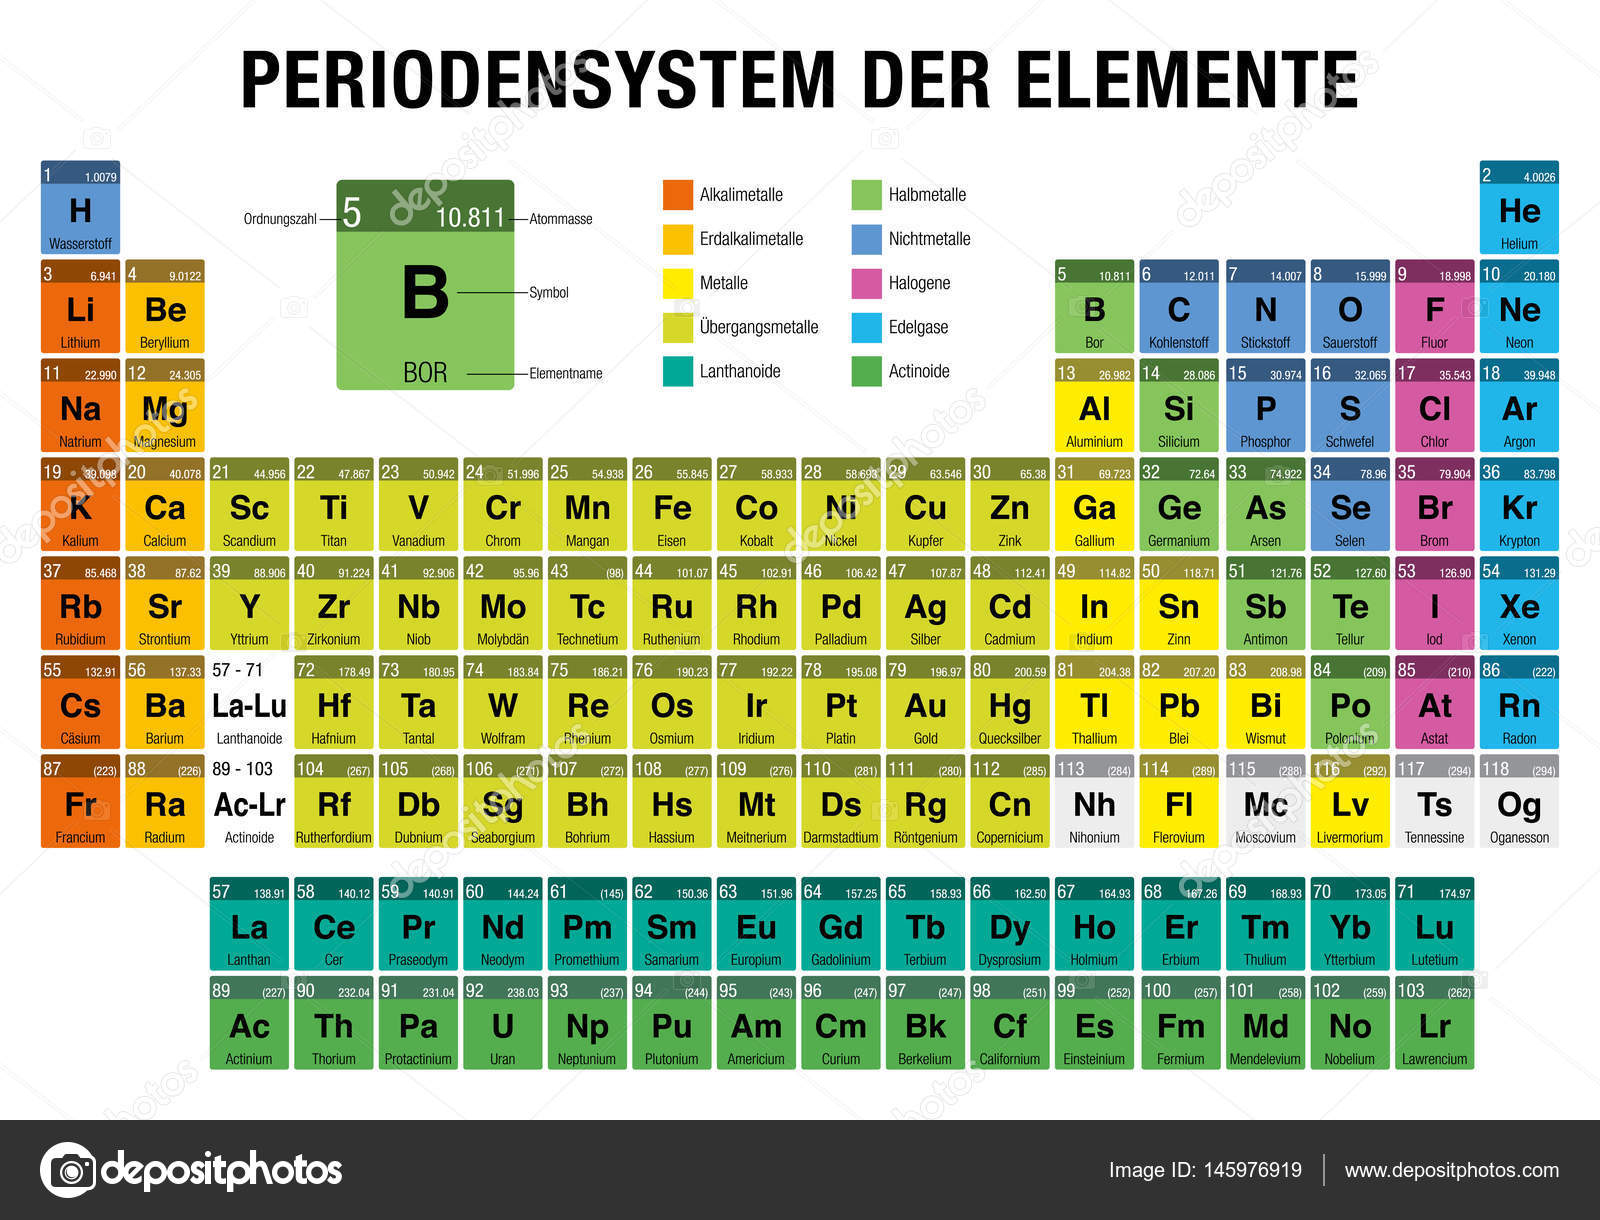 Periodensystem der elemente periodic table of elements in german periodensystem der elemente periodic table of elements in german language on white background with the 4 new elements nihonium moscovium tennessine urtaz Gallery